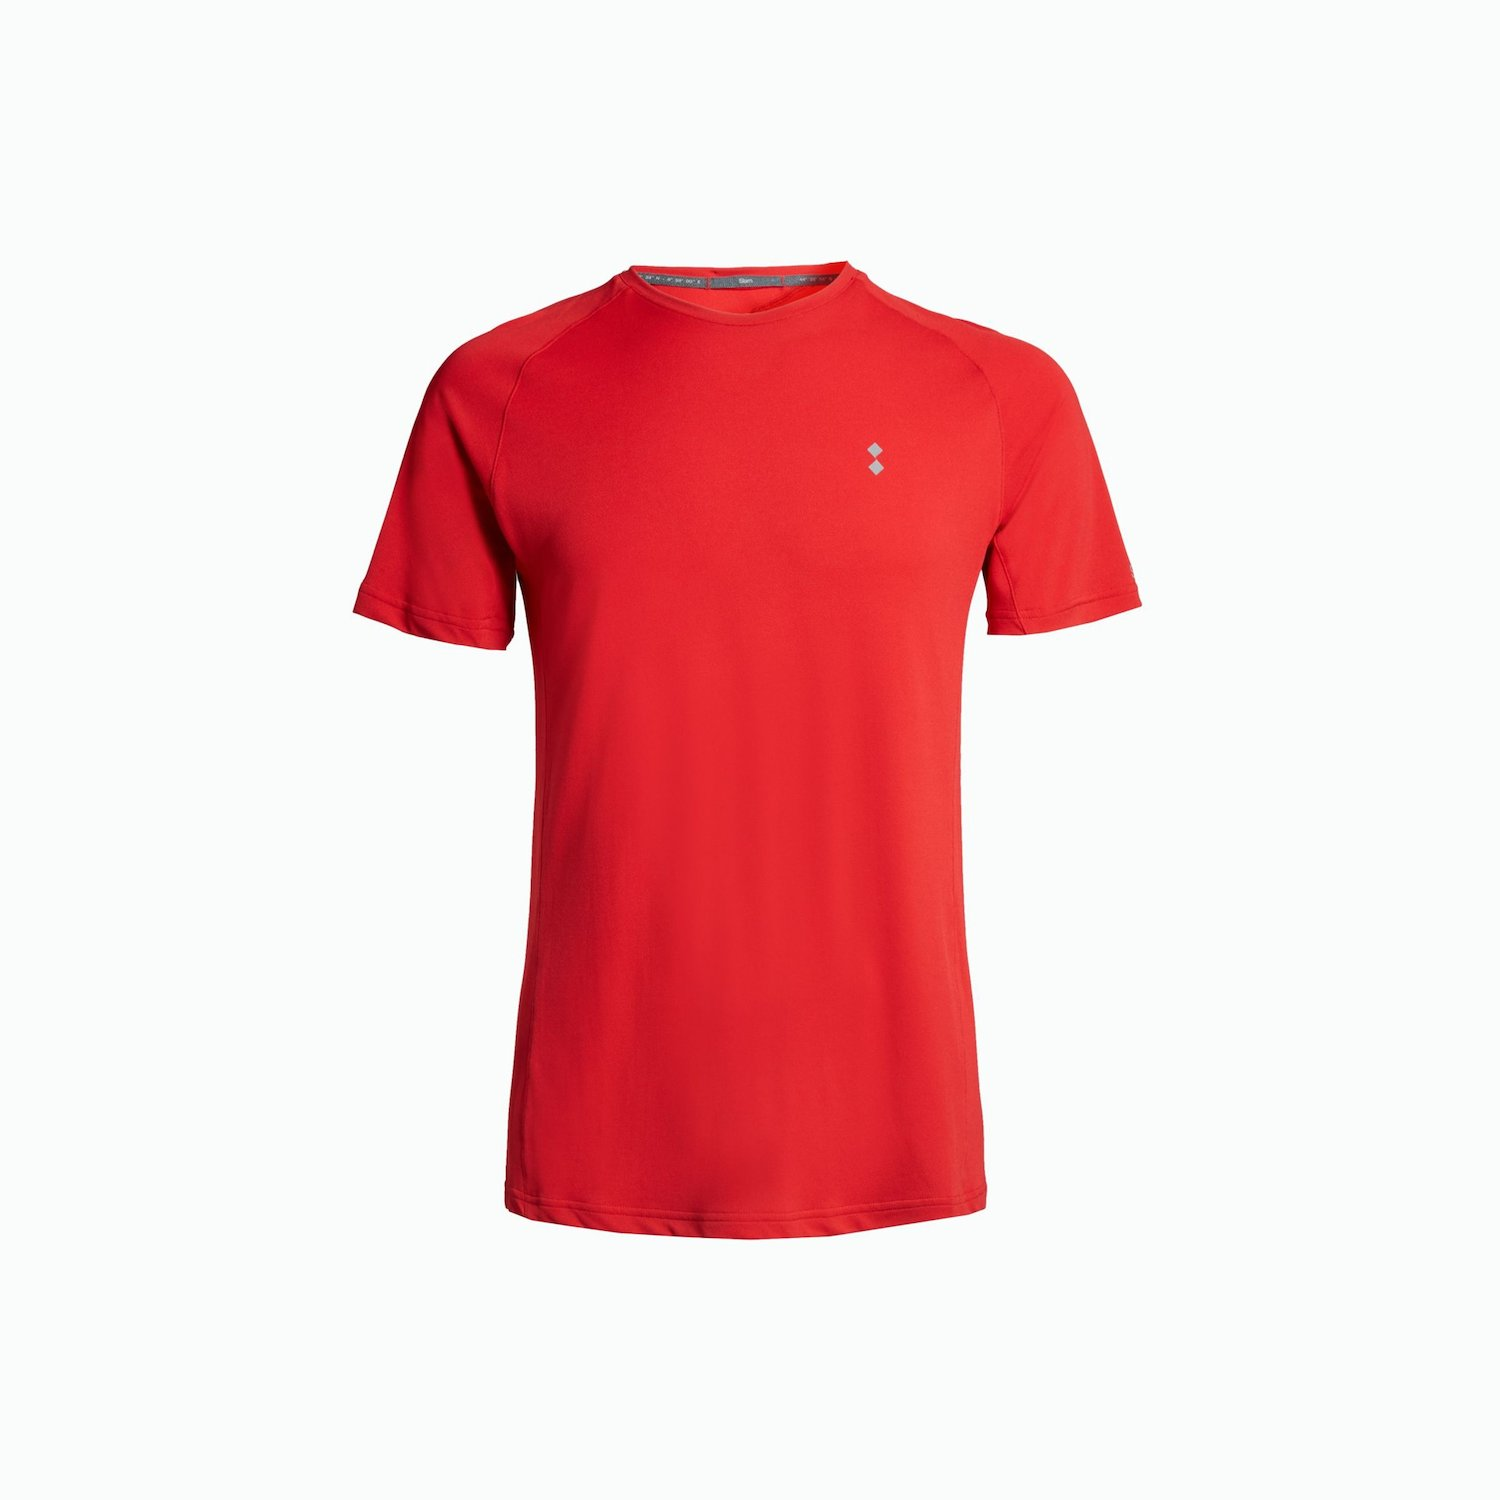 T-SHIRT A151 - Rojo Slam